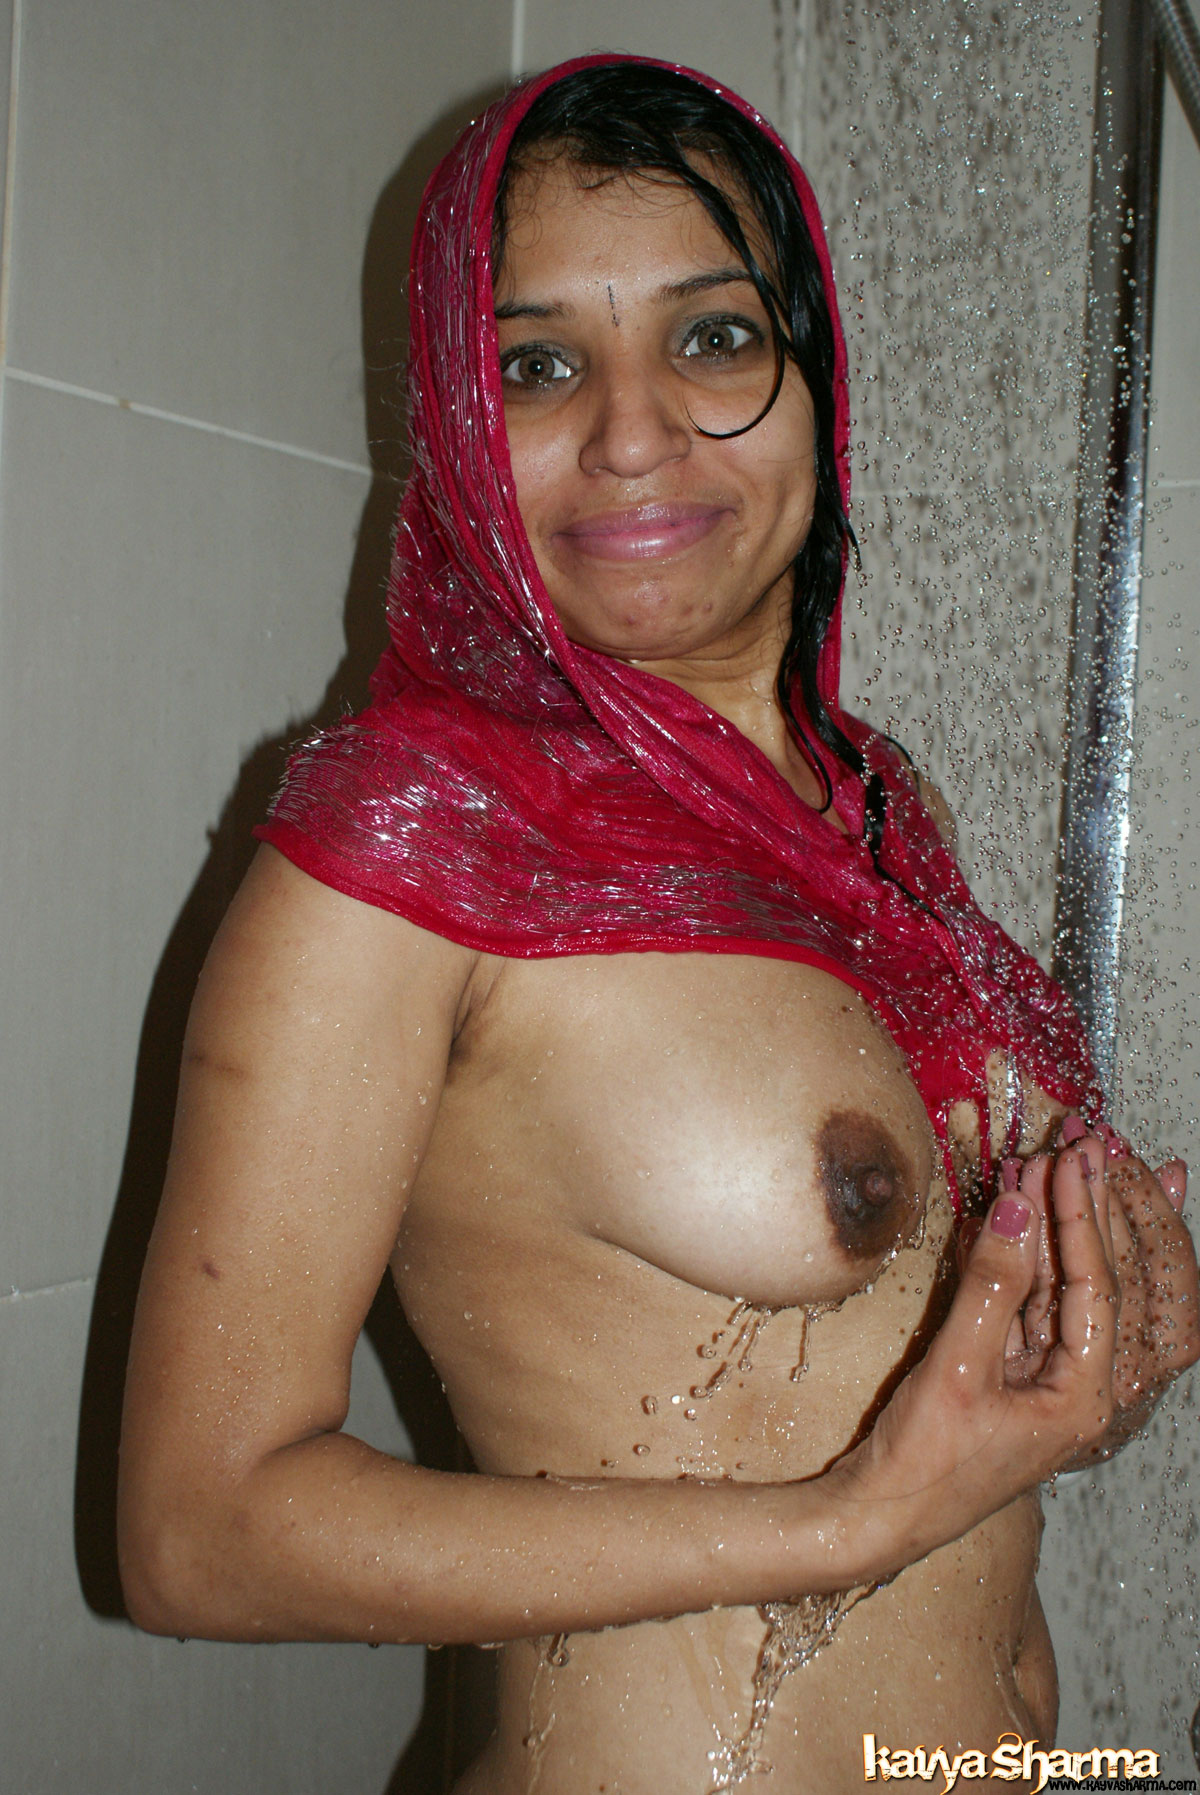 Iab picture gallery 18. Kavya sharma taking shower and getting